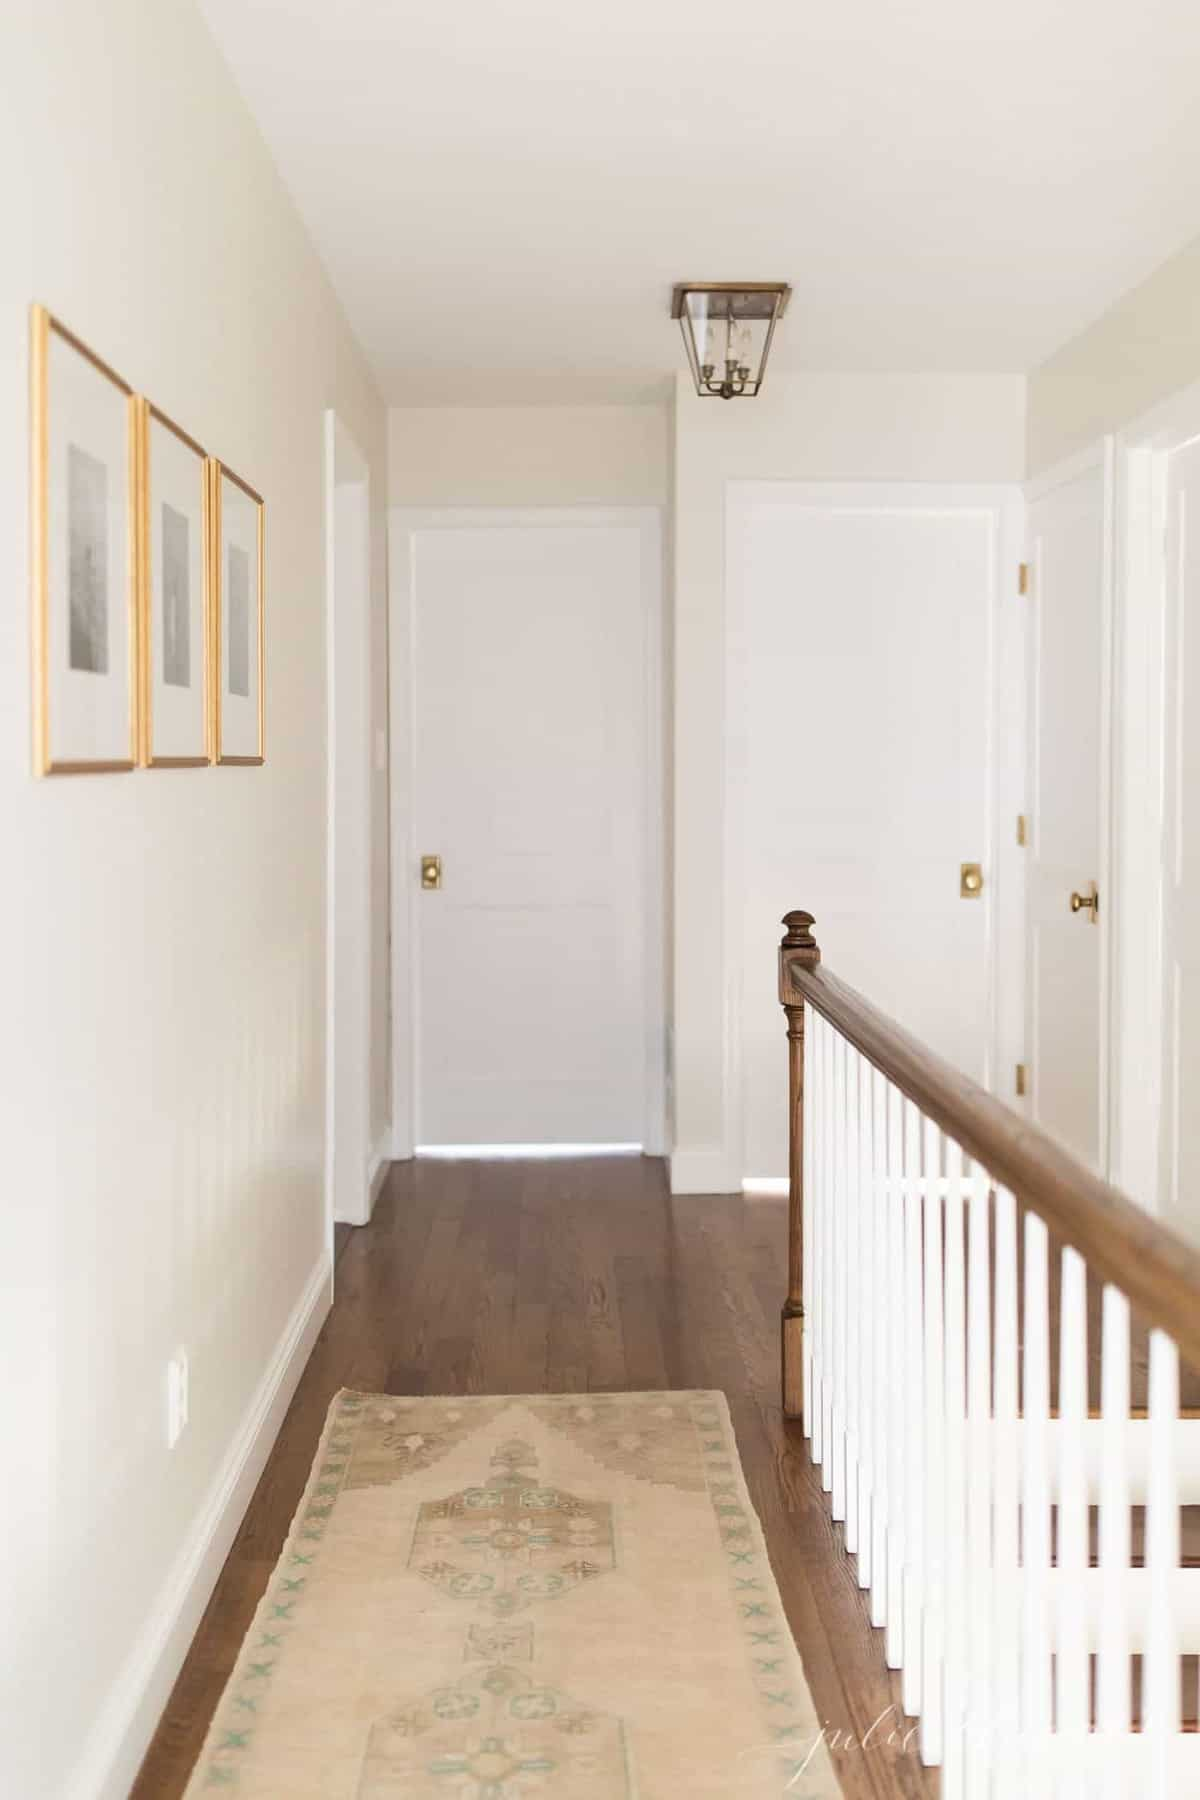 A white upstairs hallway in a home with a turkish rug on the floor.